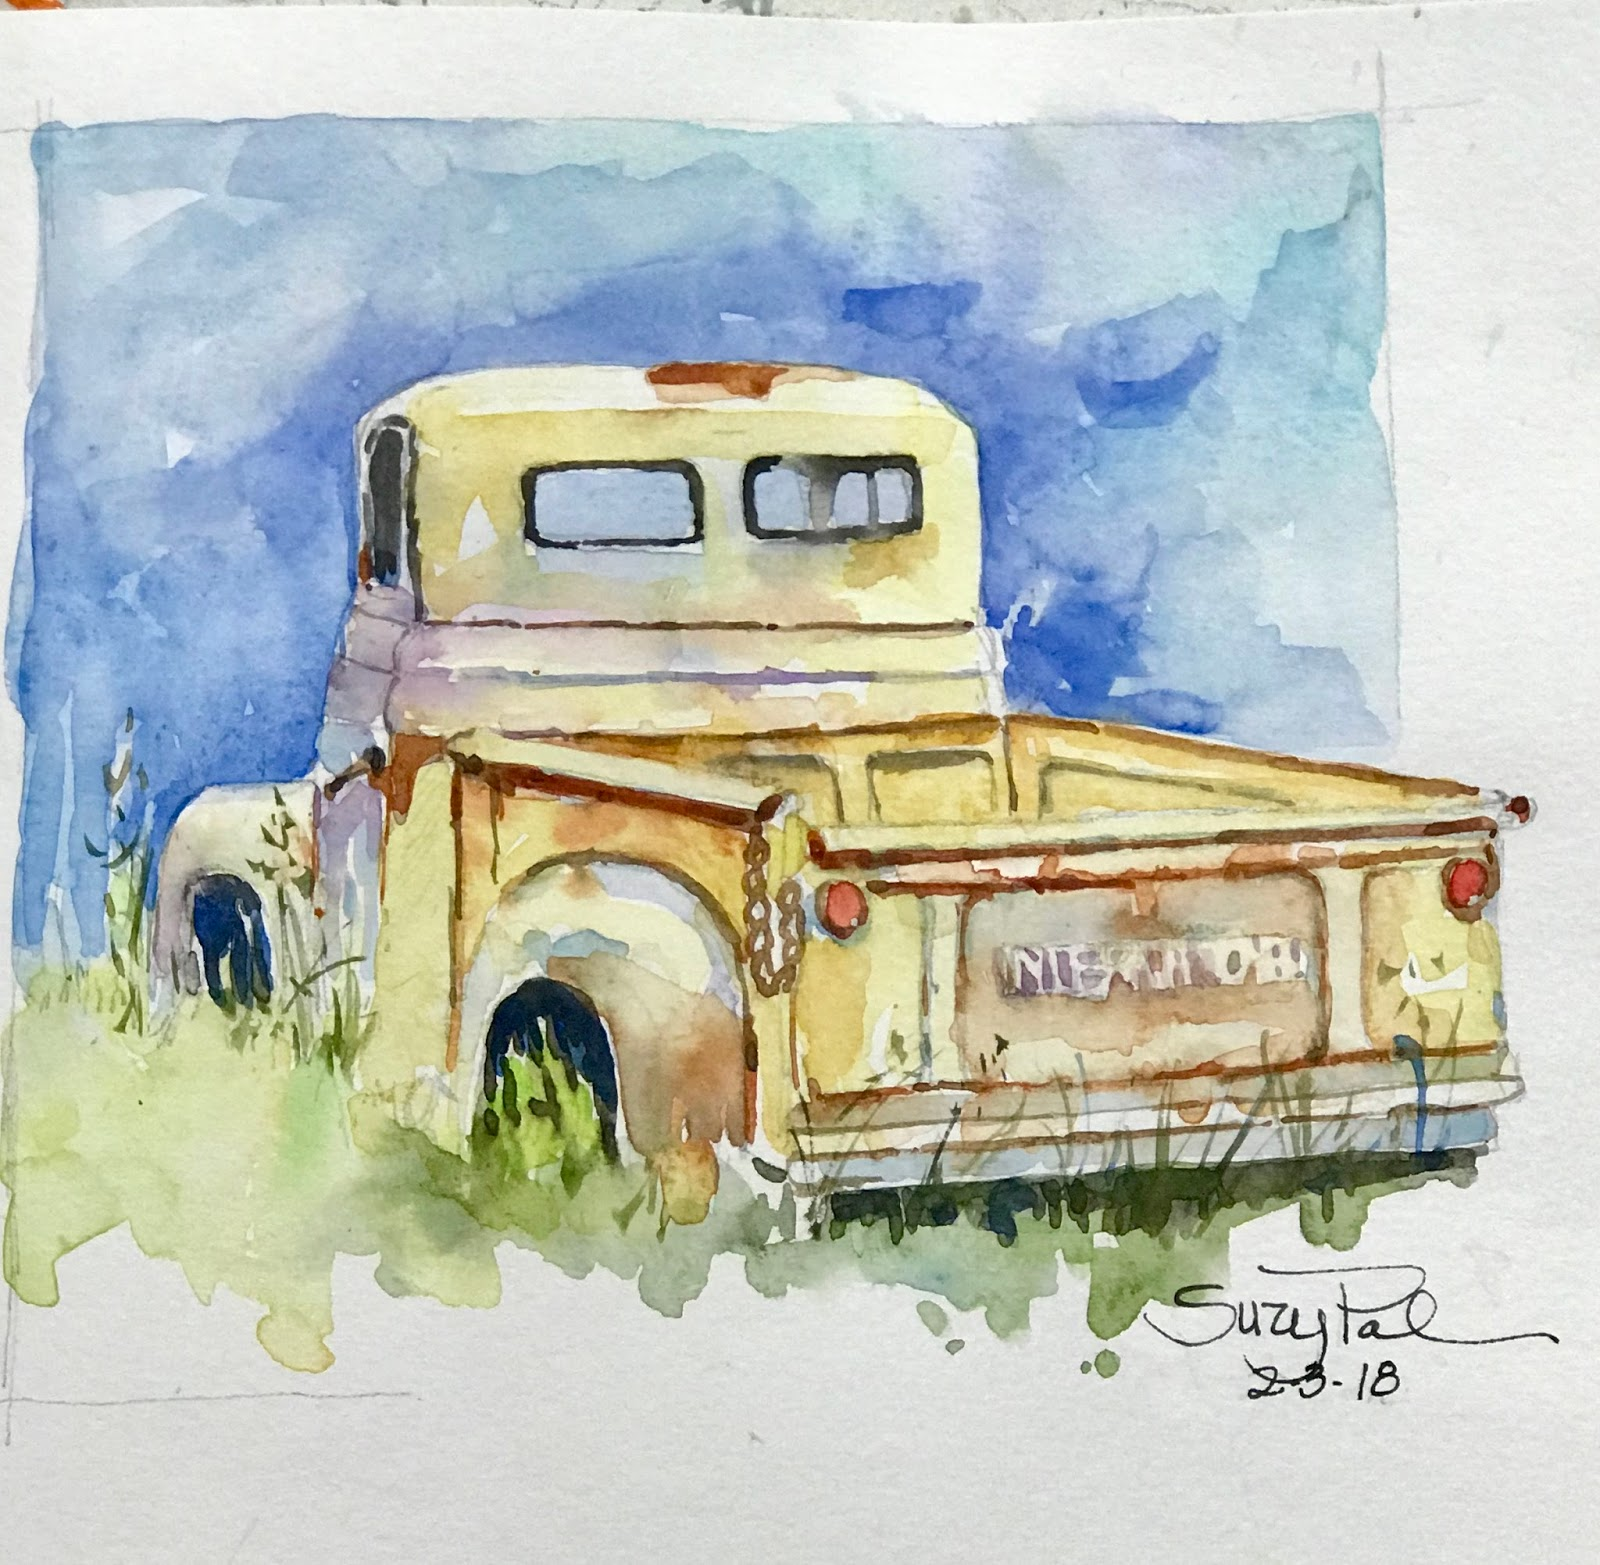 Suzy \'Pal\' Powell Watercolors Collages and Sketches: Old Vehicles